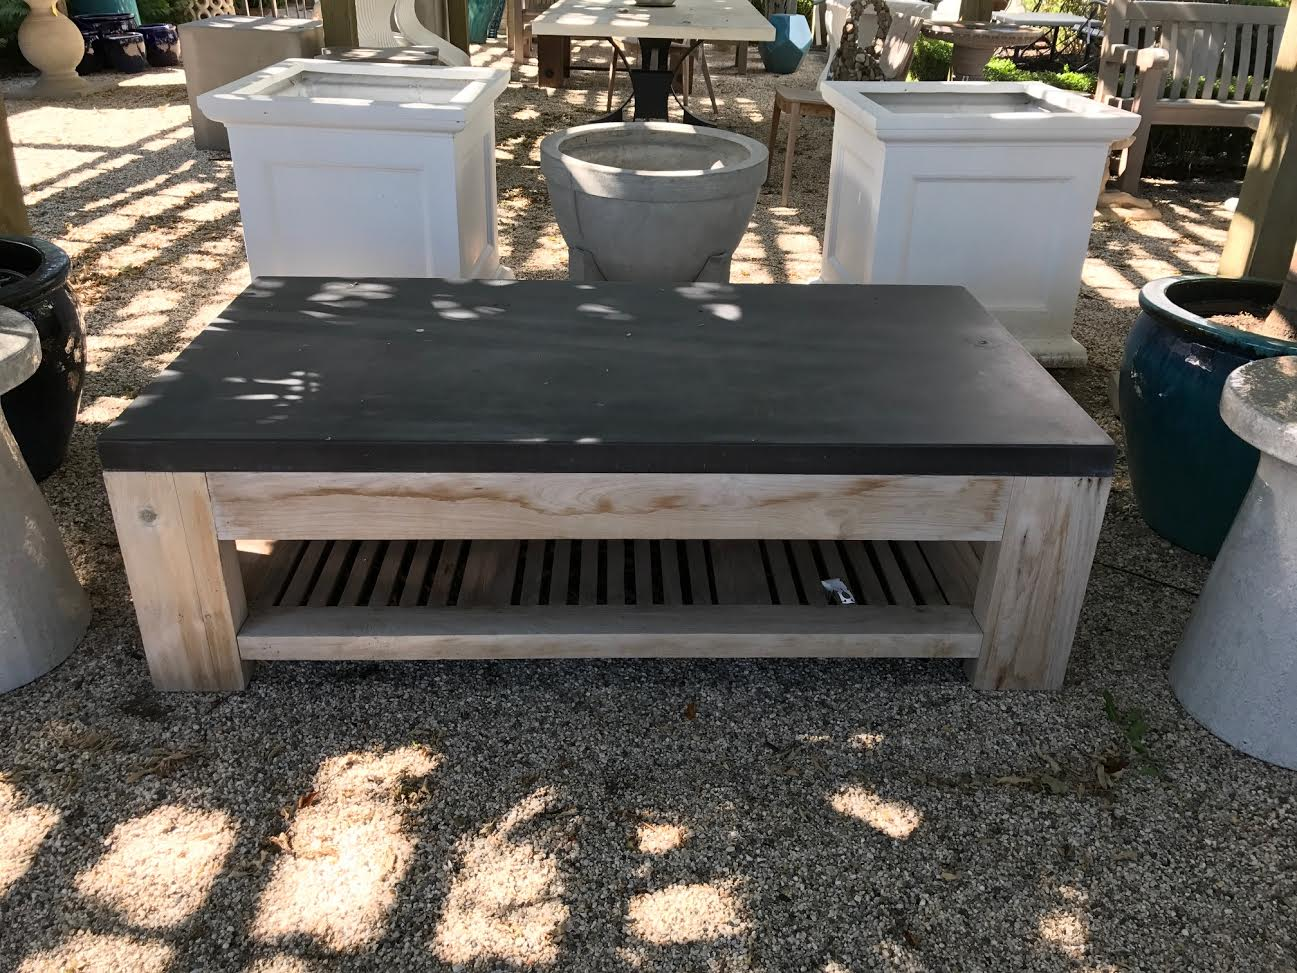 Slatted Teak and Concrete Outdoor Coffee Table - Mecox Gardens